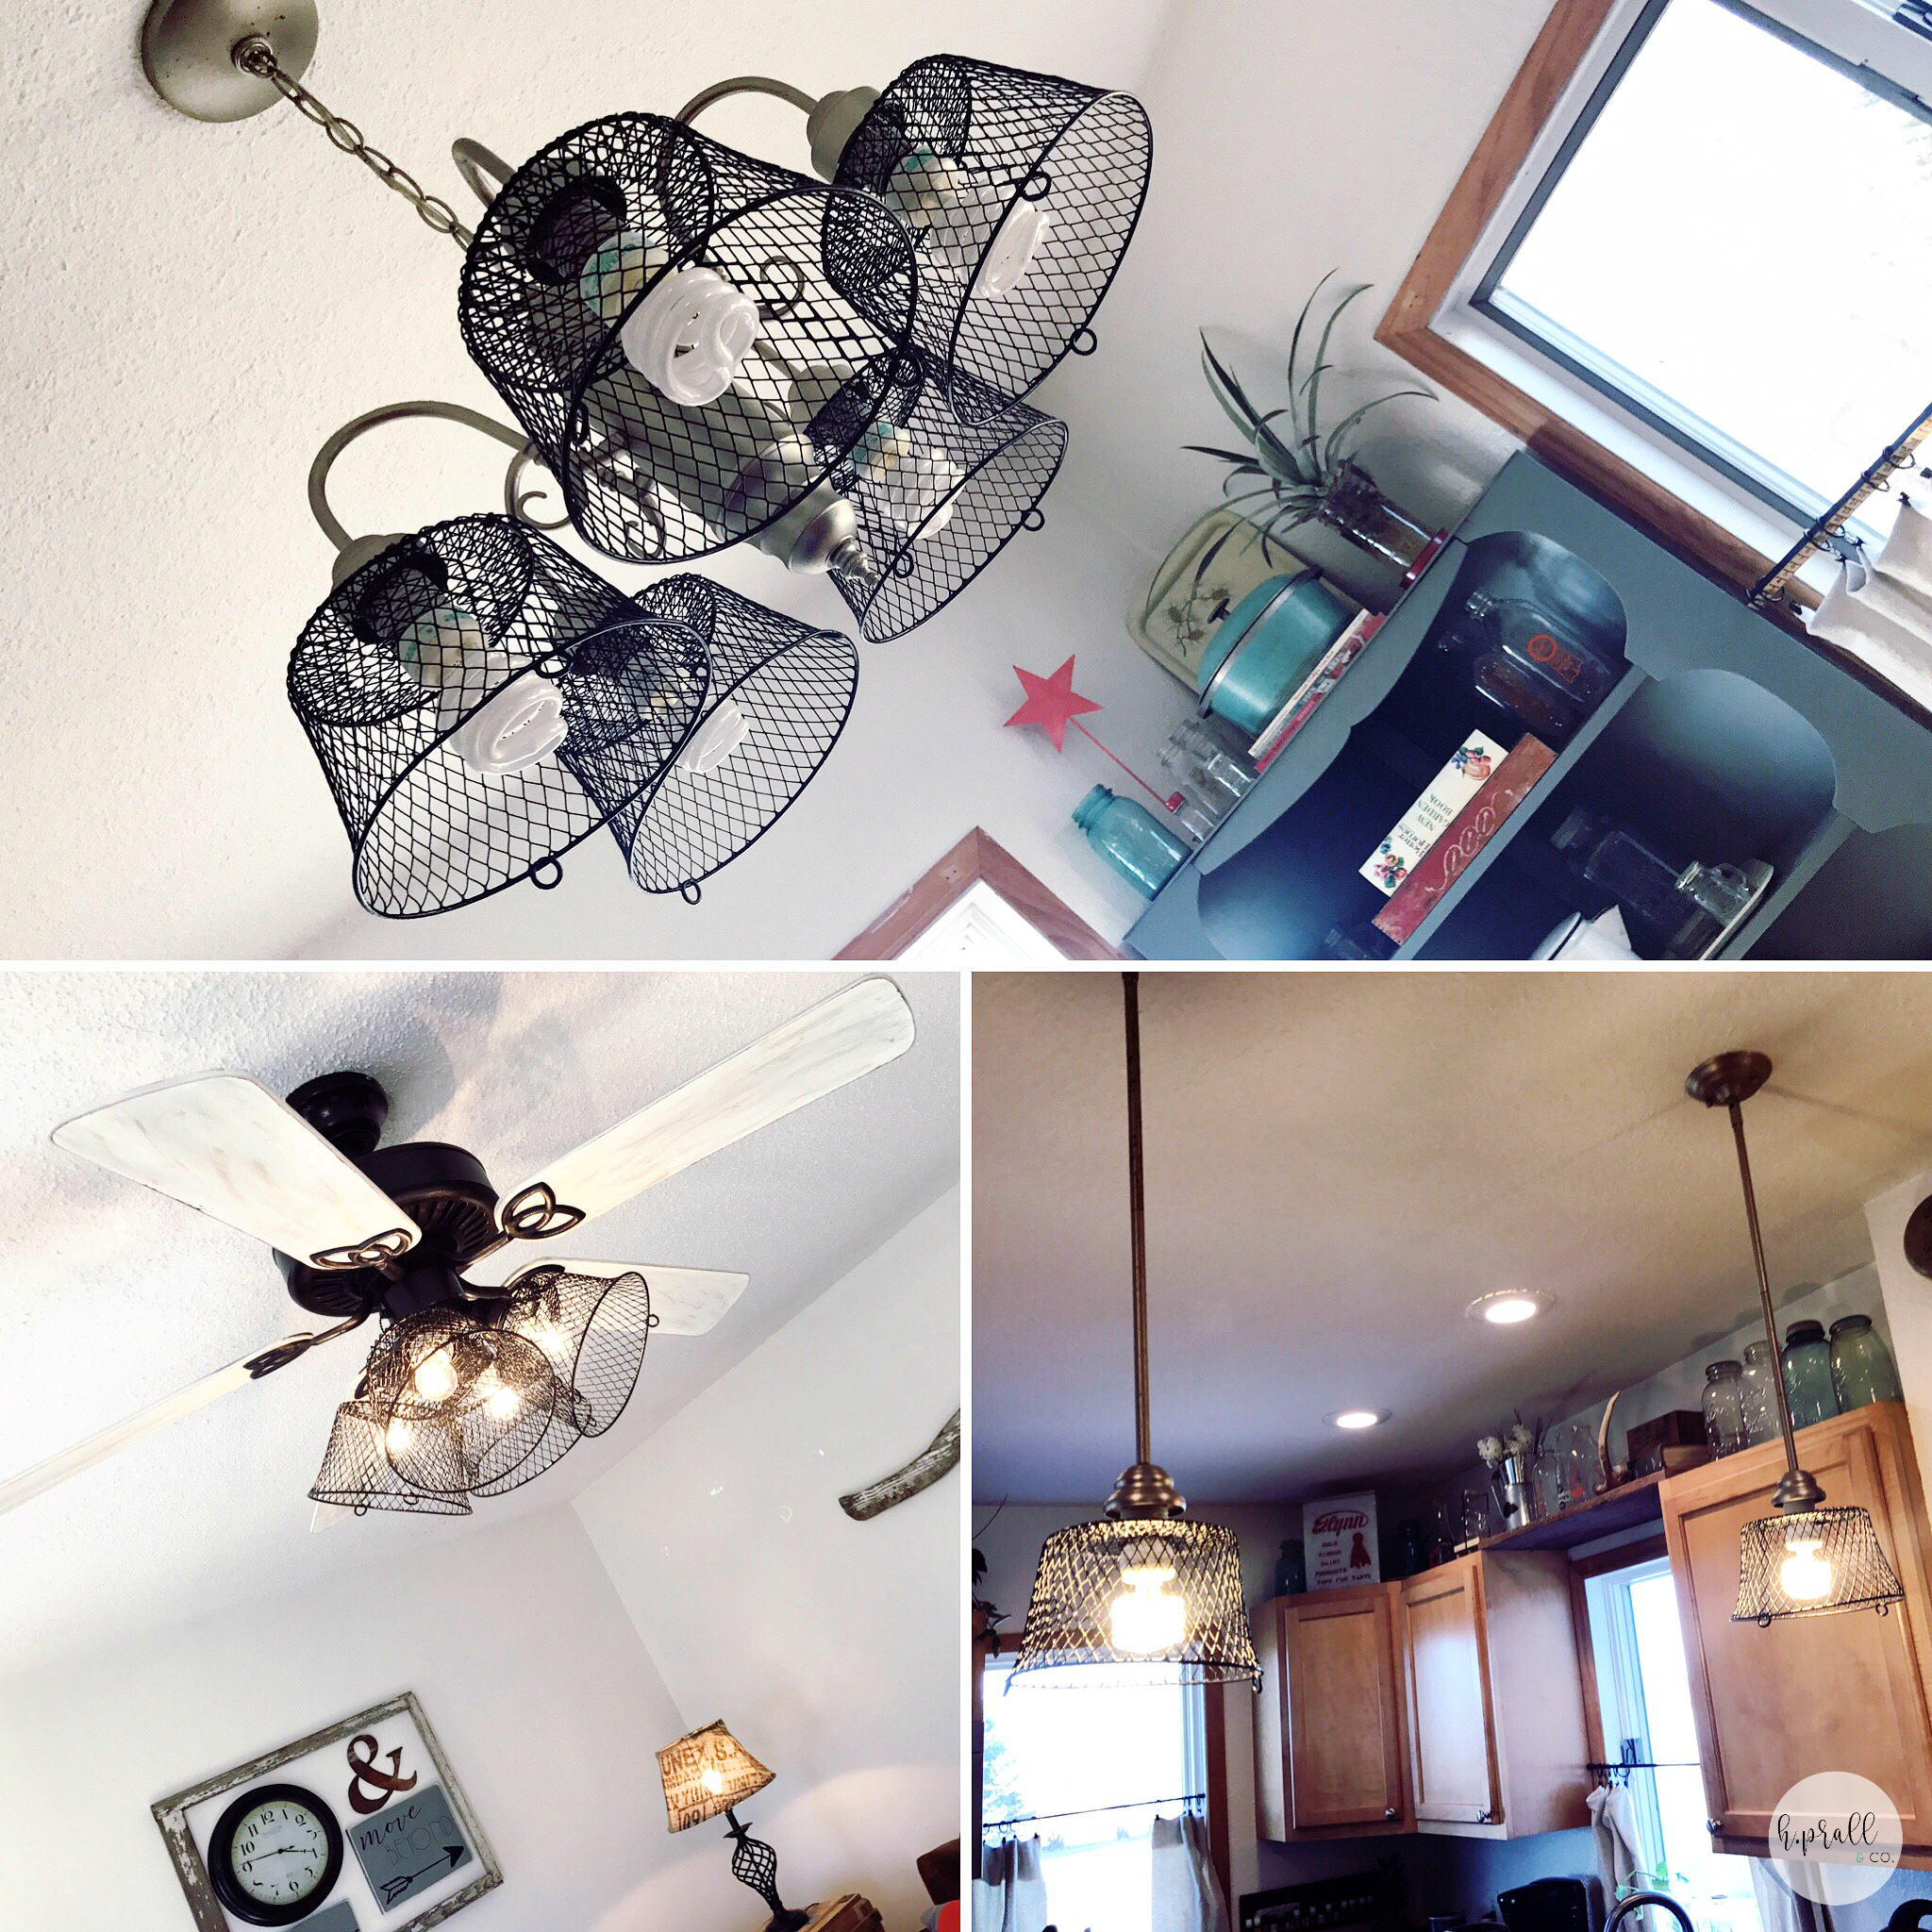 DIY light fixture cover ideas from H.Prall & Co.